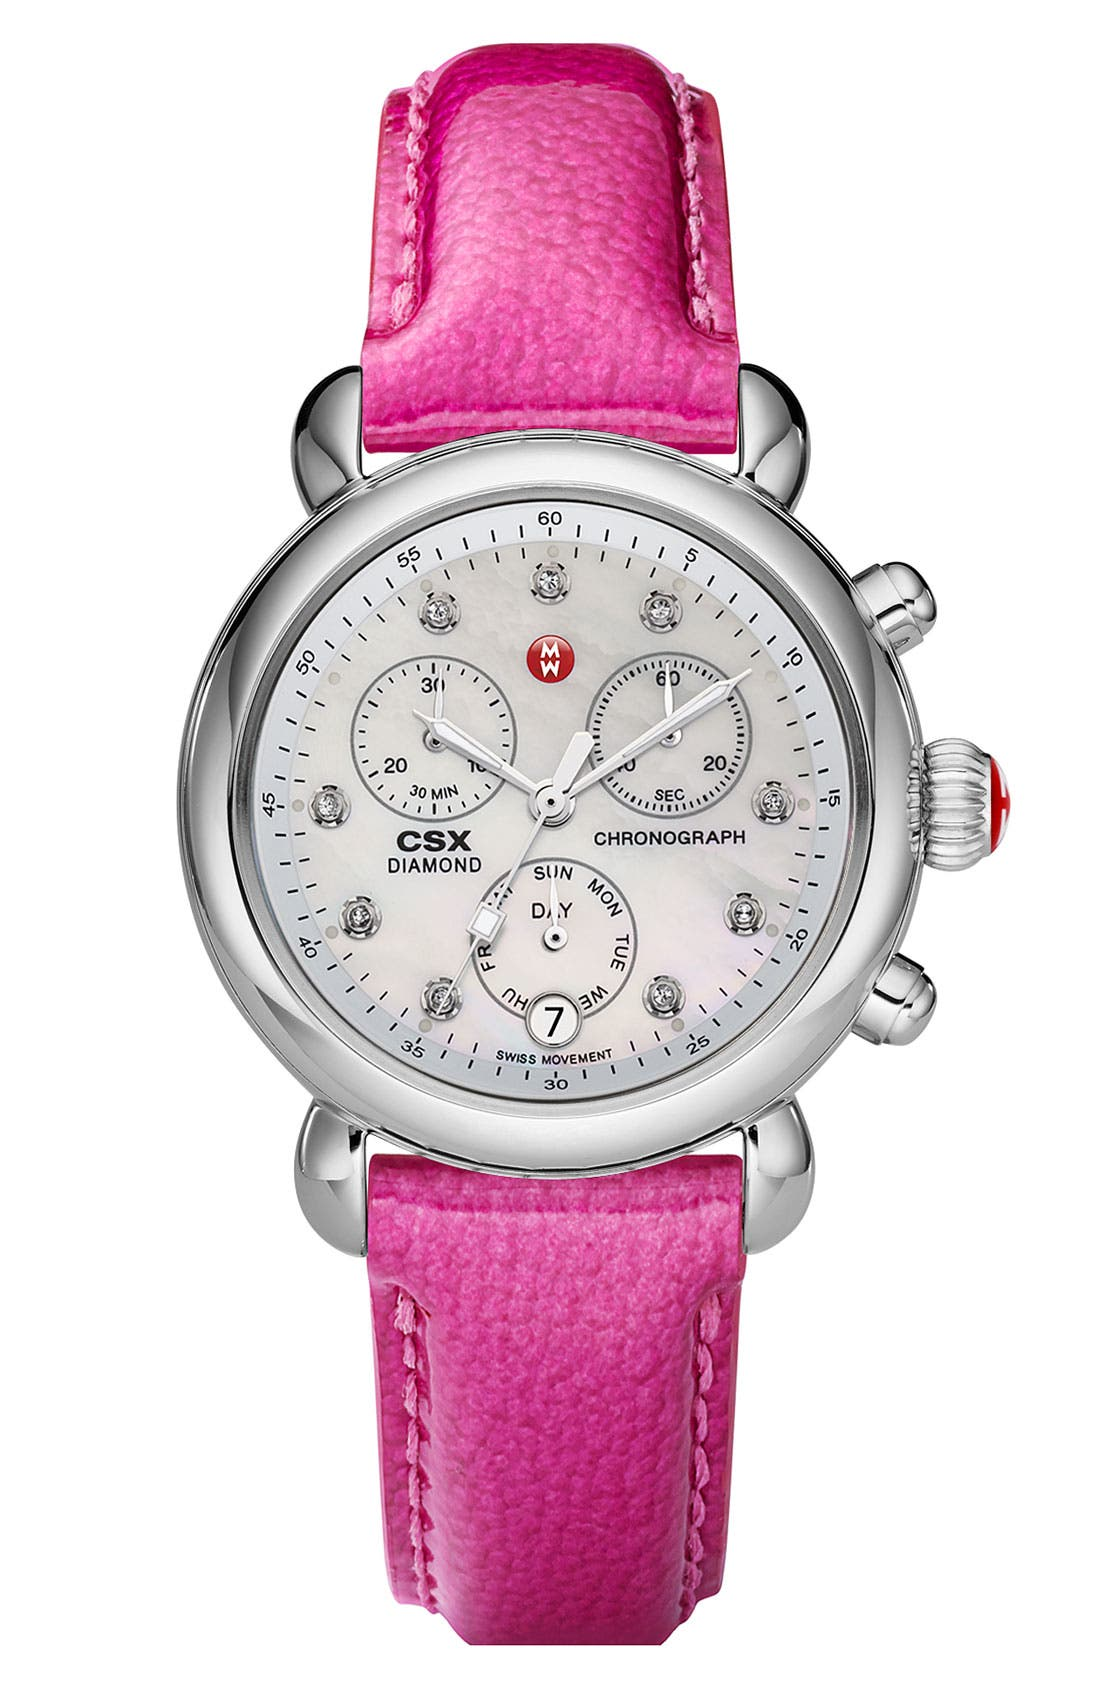 Main Image - MICHELE 'CSX-36' Diamond Dial Watch Case & 18mm Pink Patent Leather Strap